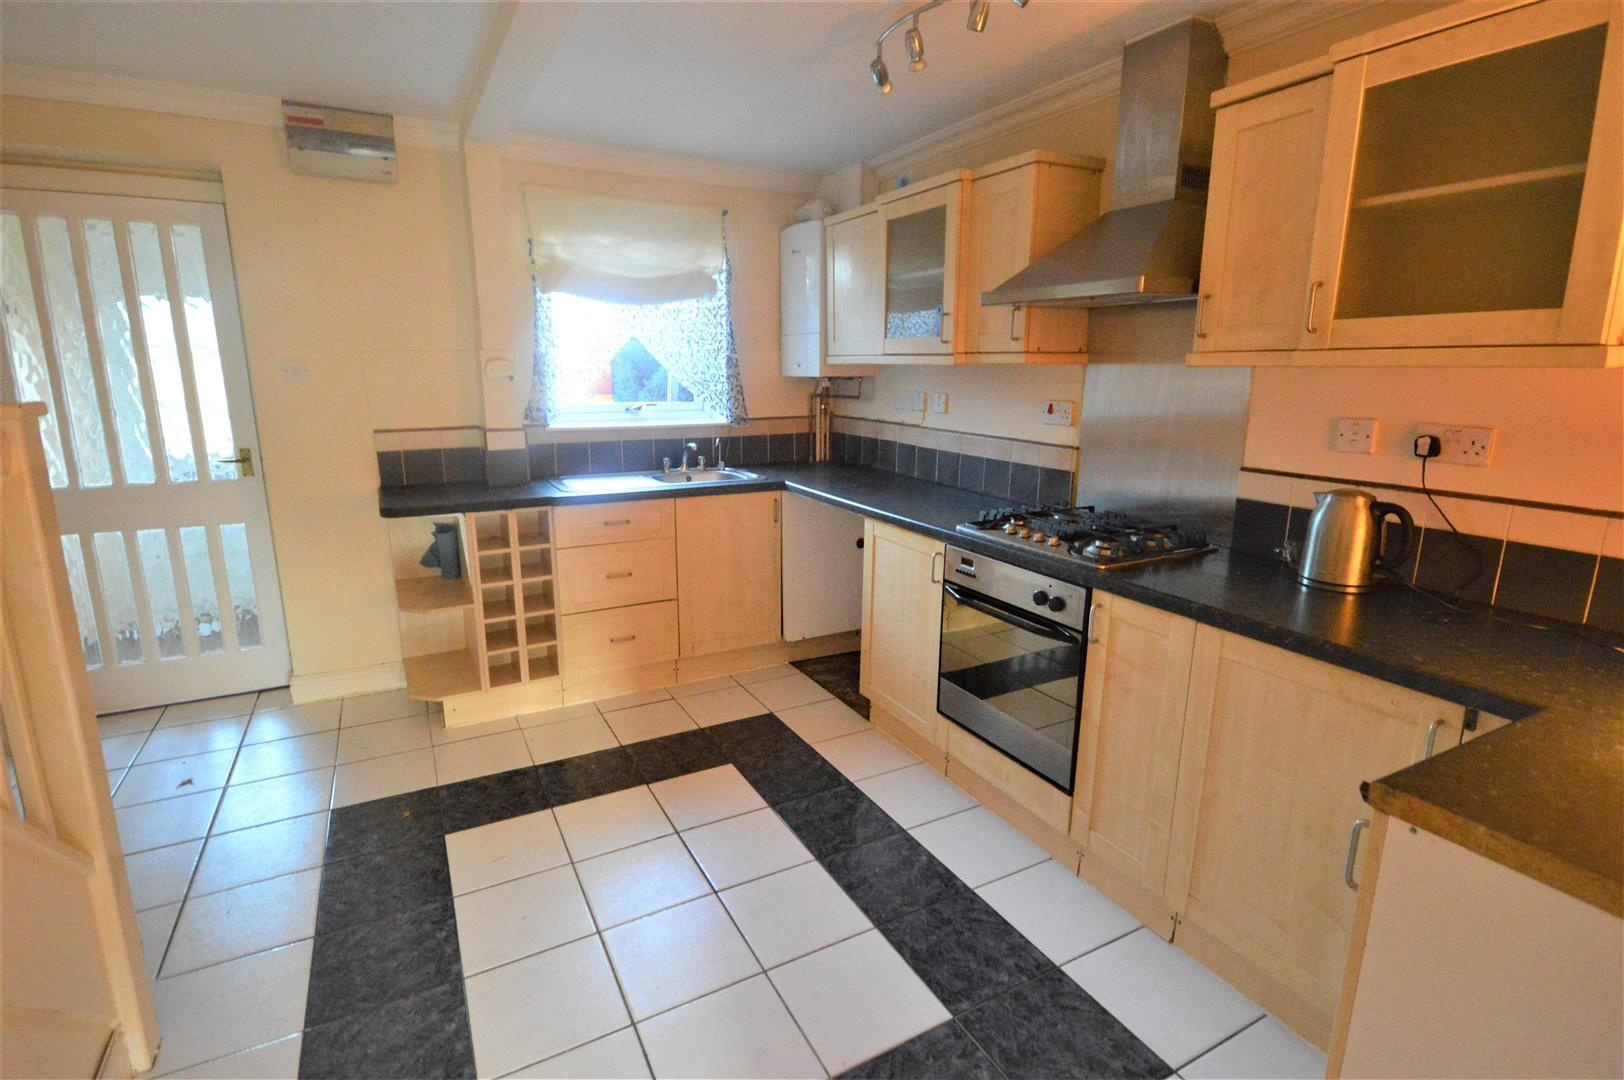 2 bed terraced for sale in Leominster  - Property Image 3